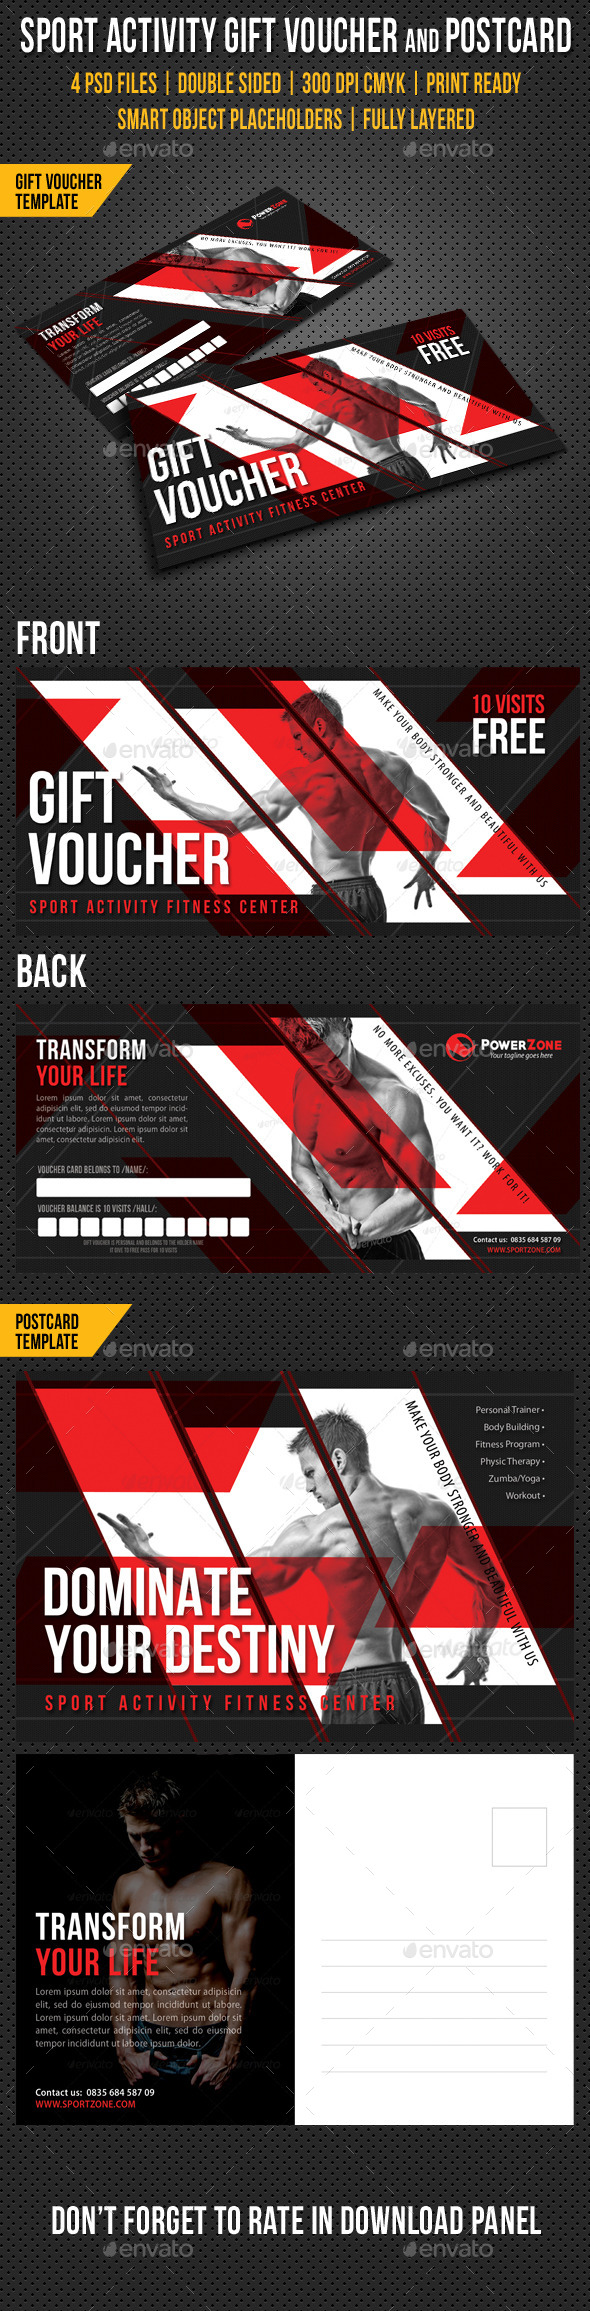 GraphicRiver Sport Activity Gift Voucher and Postcard V02 10083199